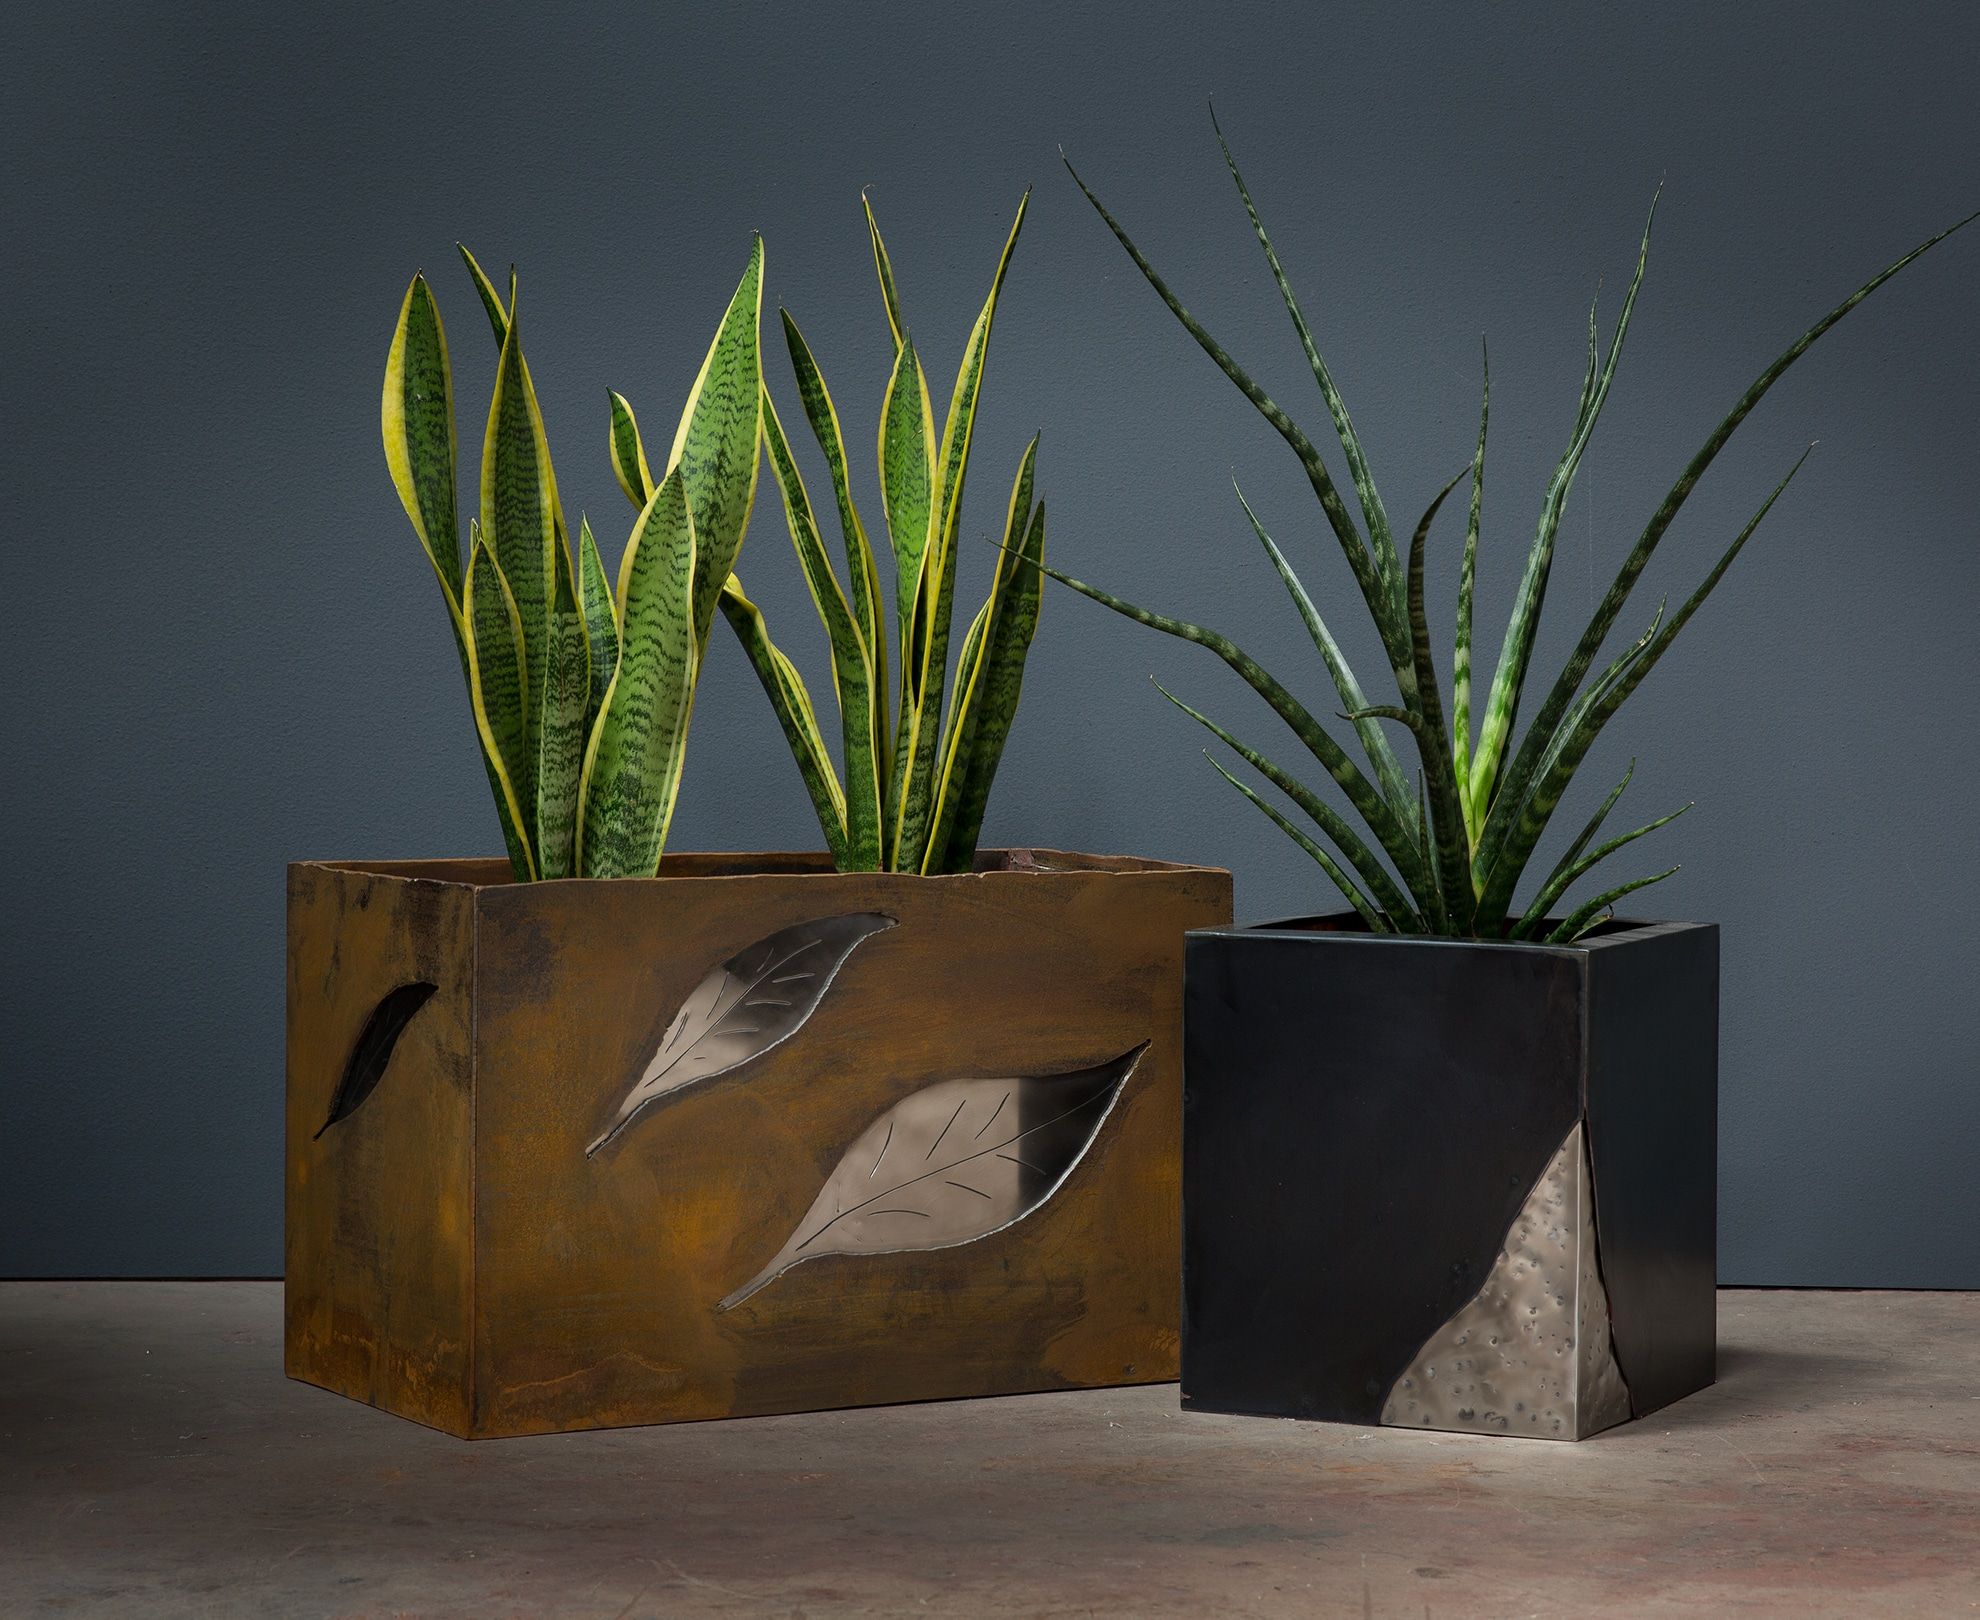 portfolio, planter boxes with mixed metals, coffee tables copper and steel legs, metal work, metalworker, interior design